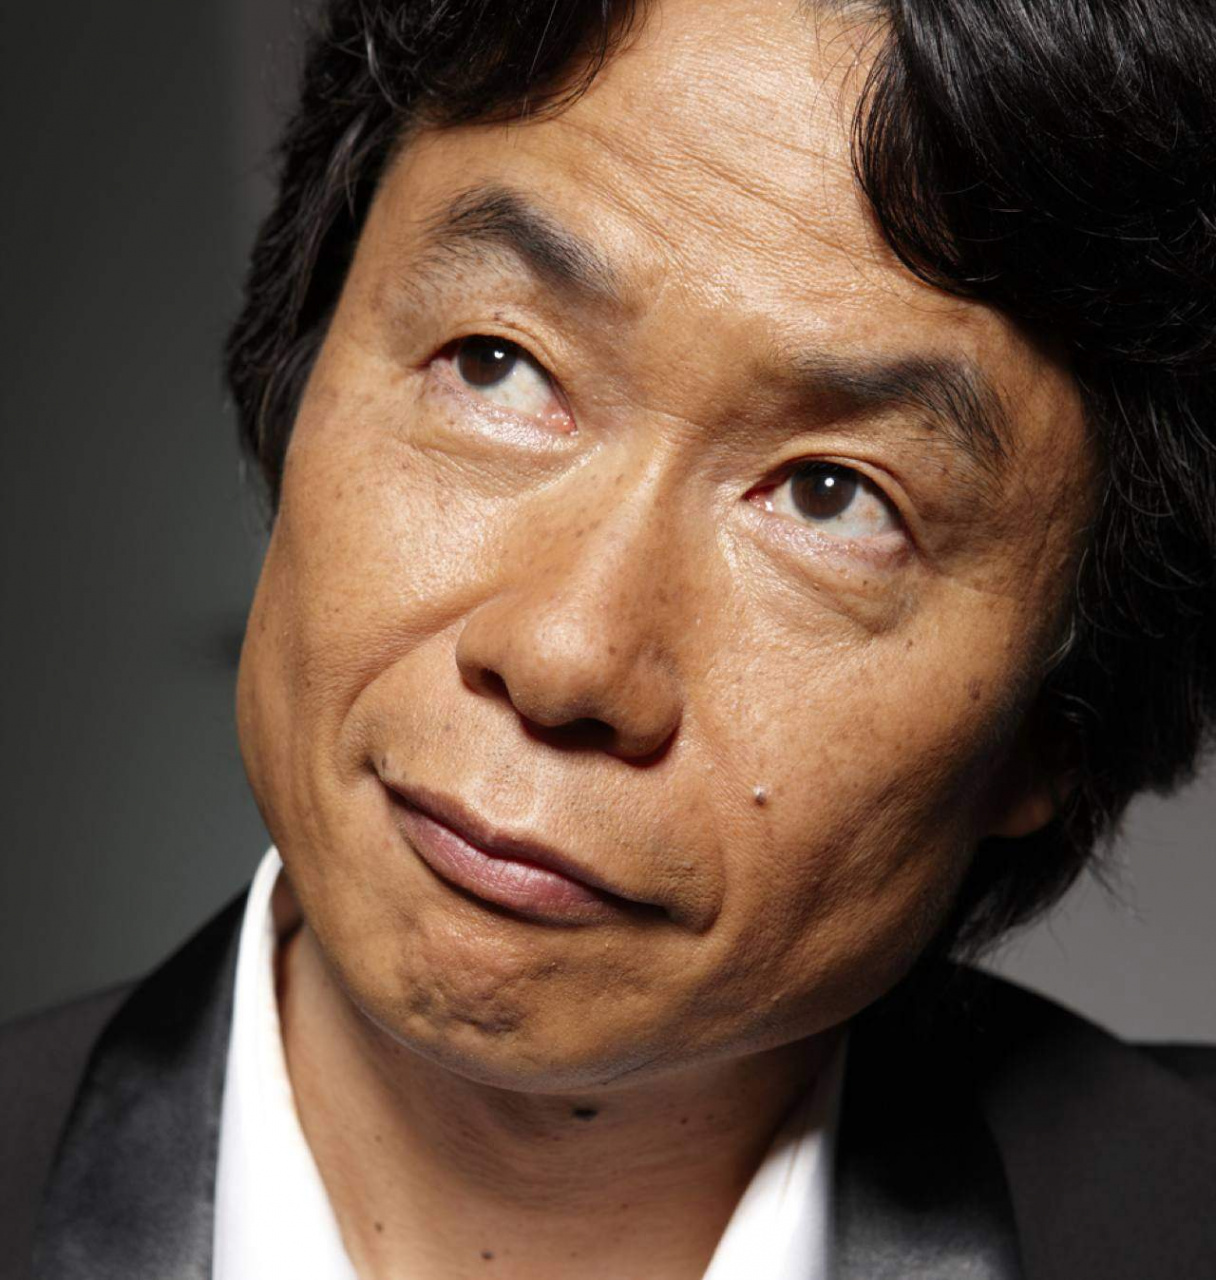 shigeru miyamoto is open to more female heroines when the gameplay